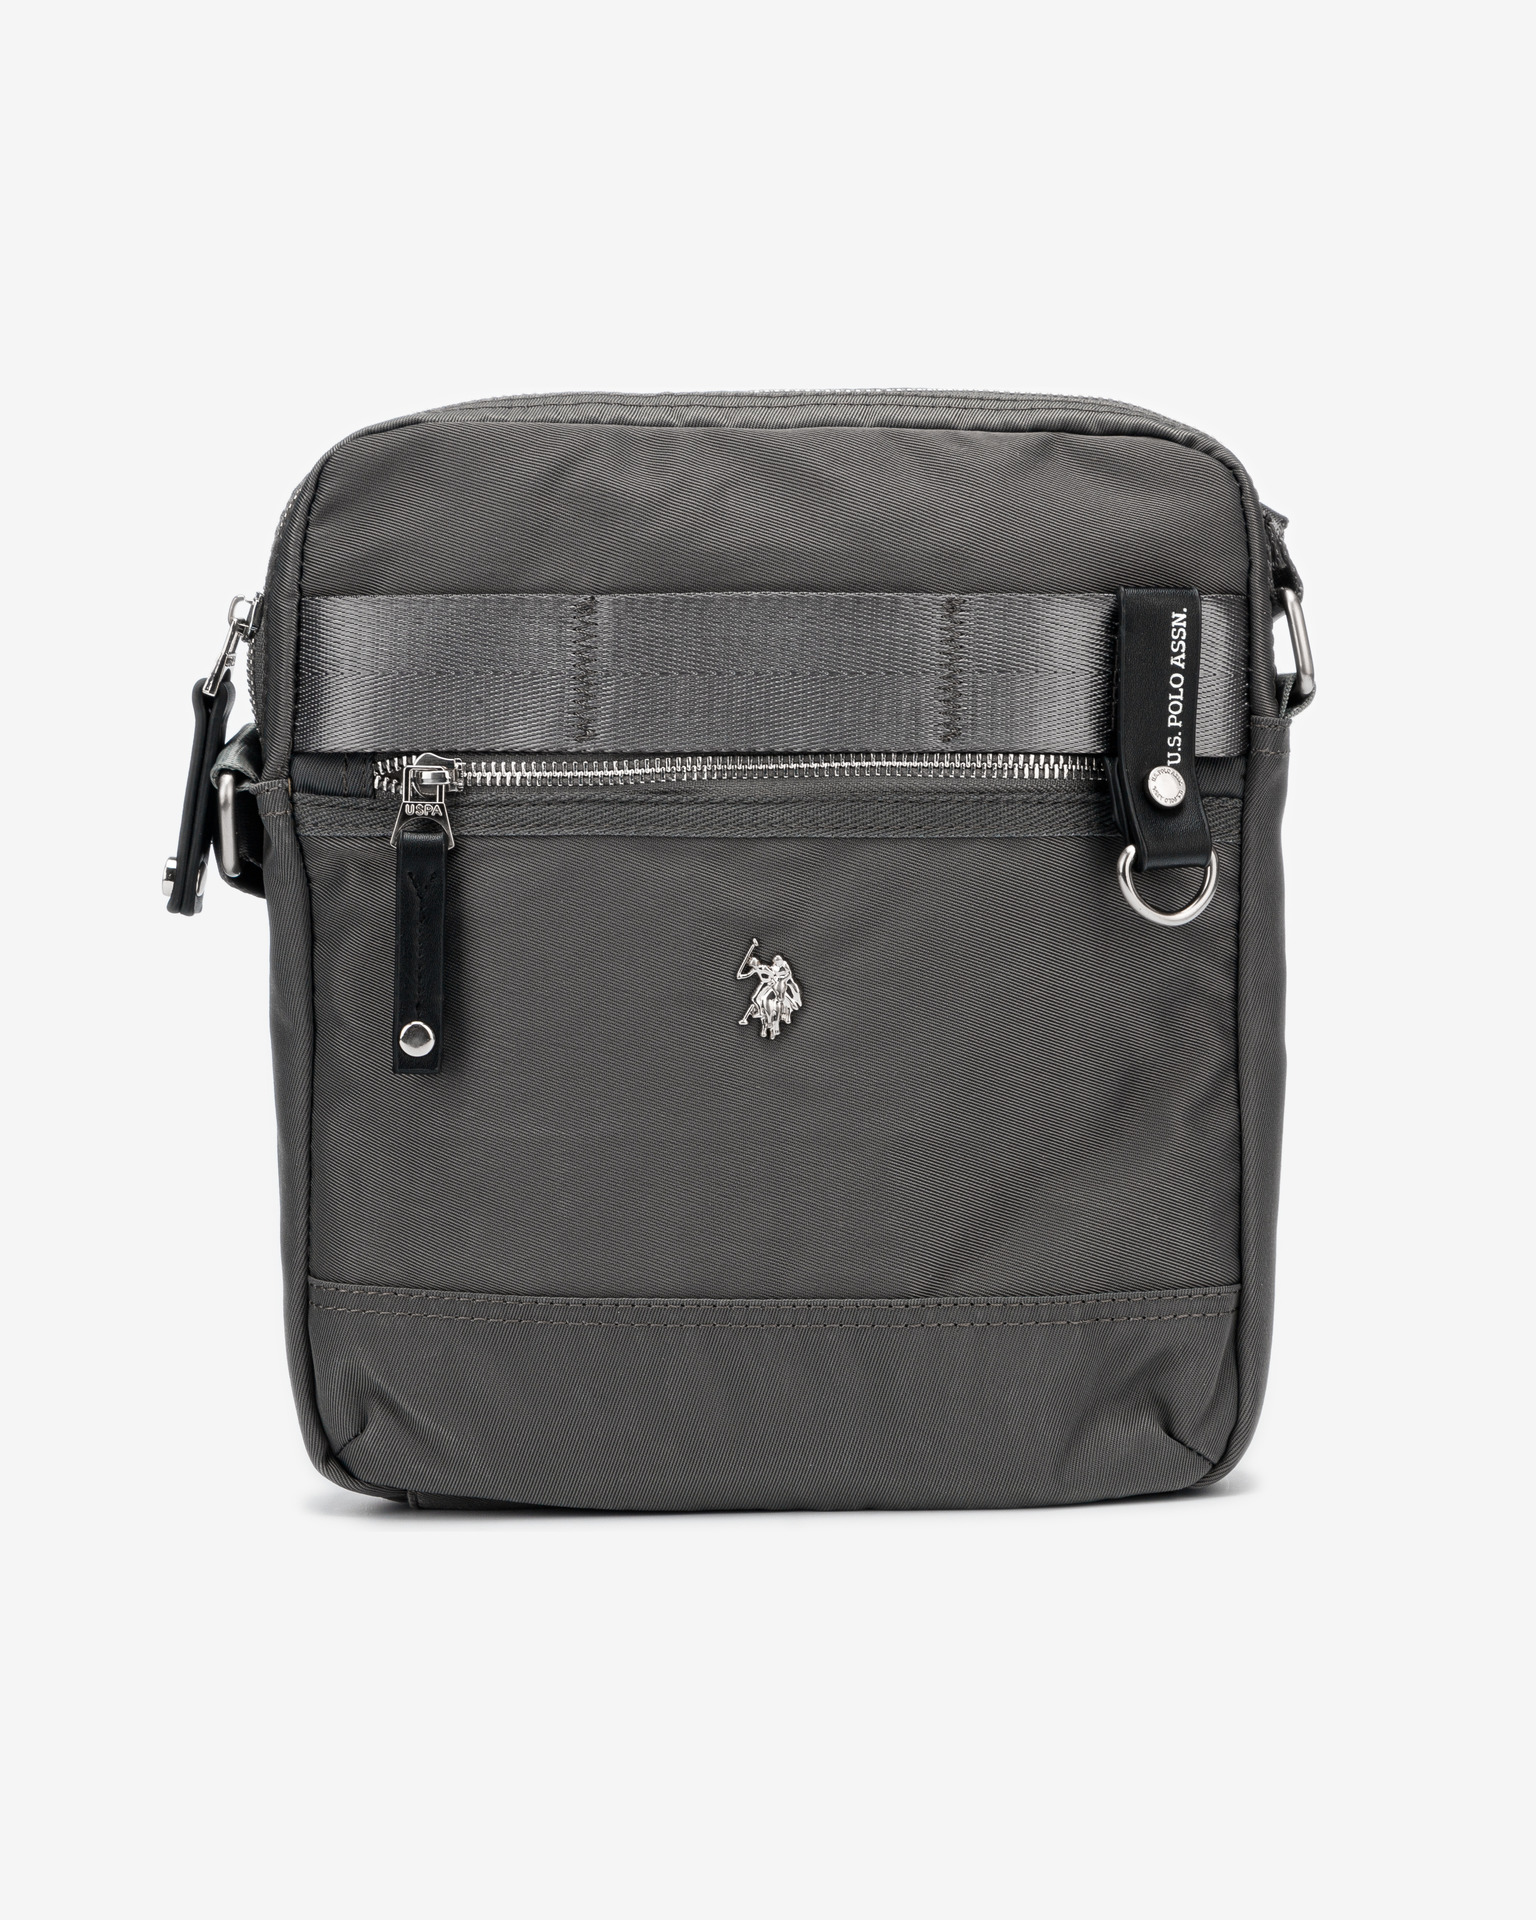 New Waganer Medium Cross body bag US Polo Assn